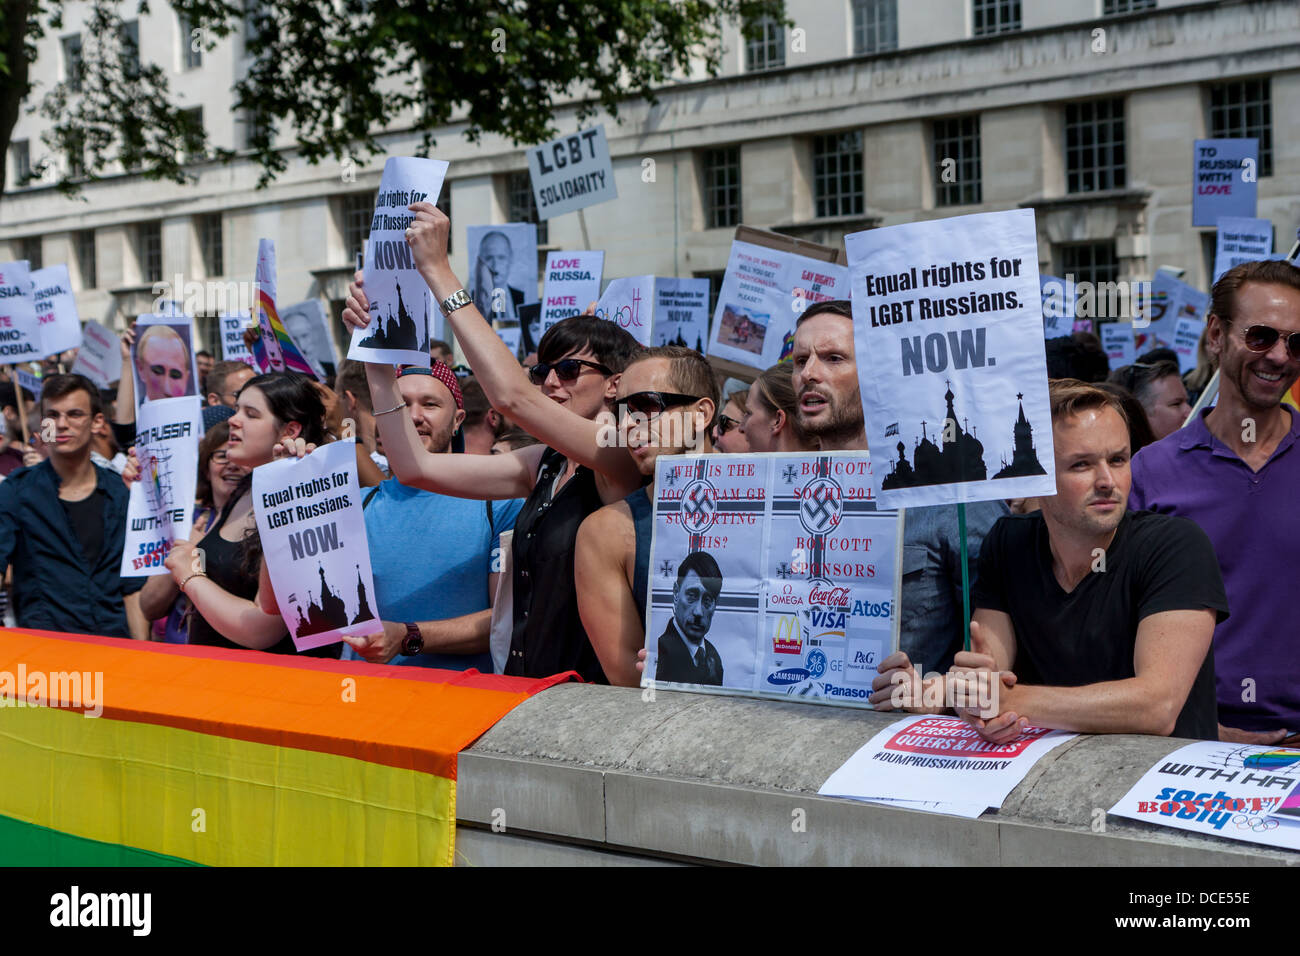 protesters denouncing homophobic laws in Russia - Stock Image